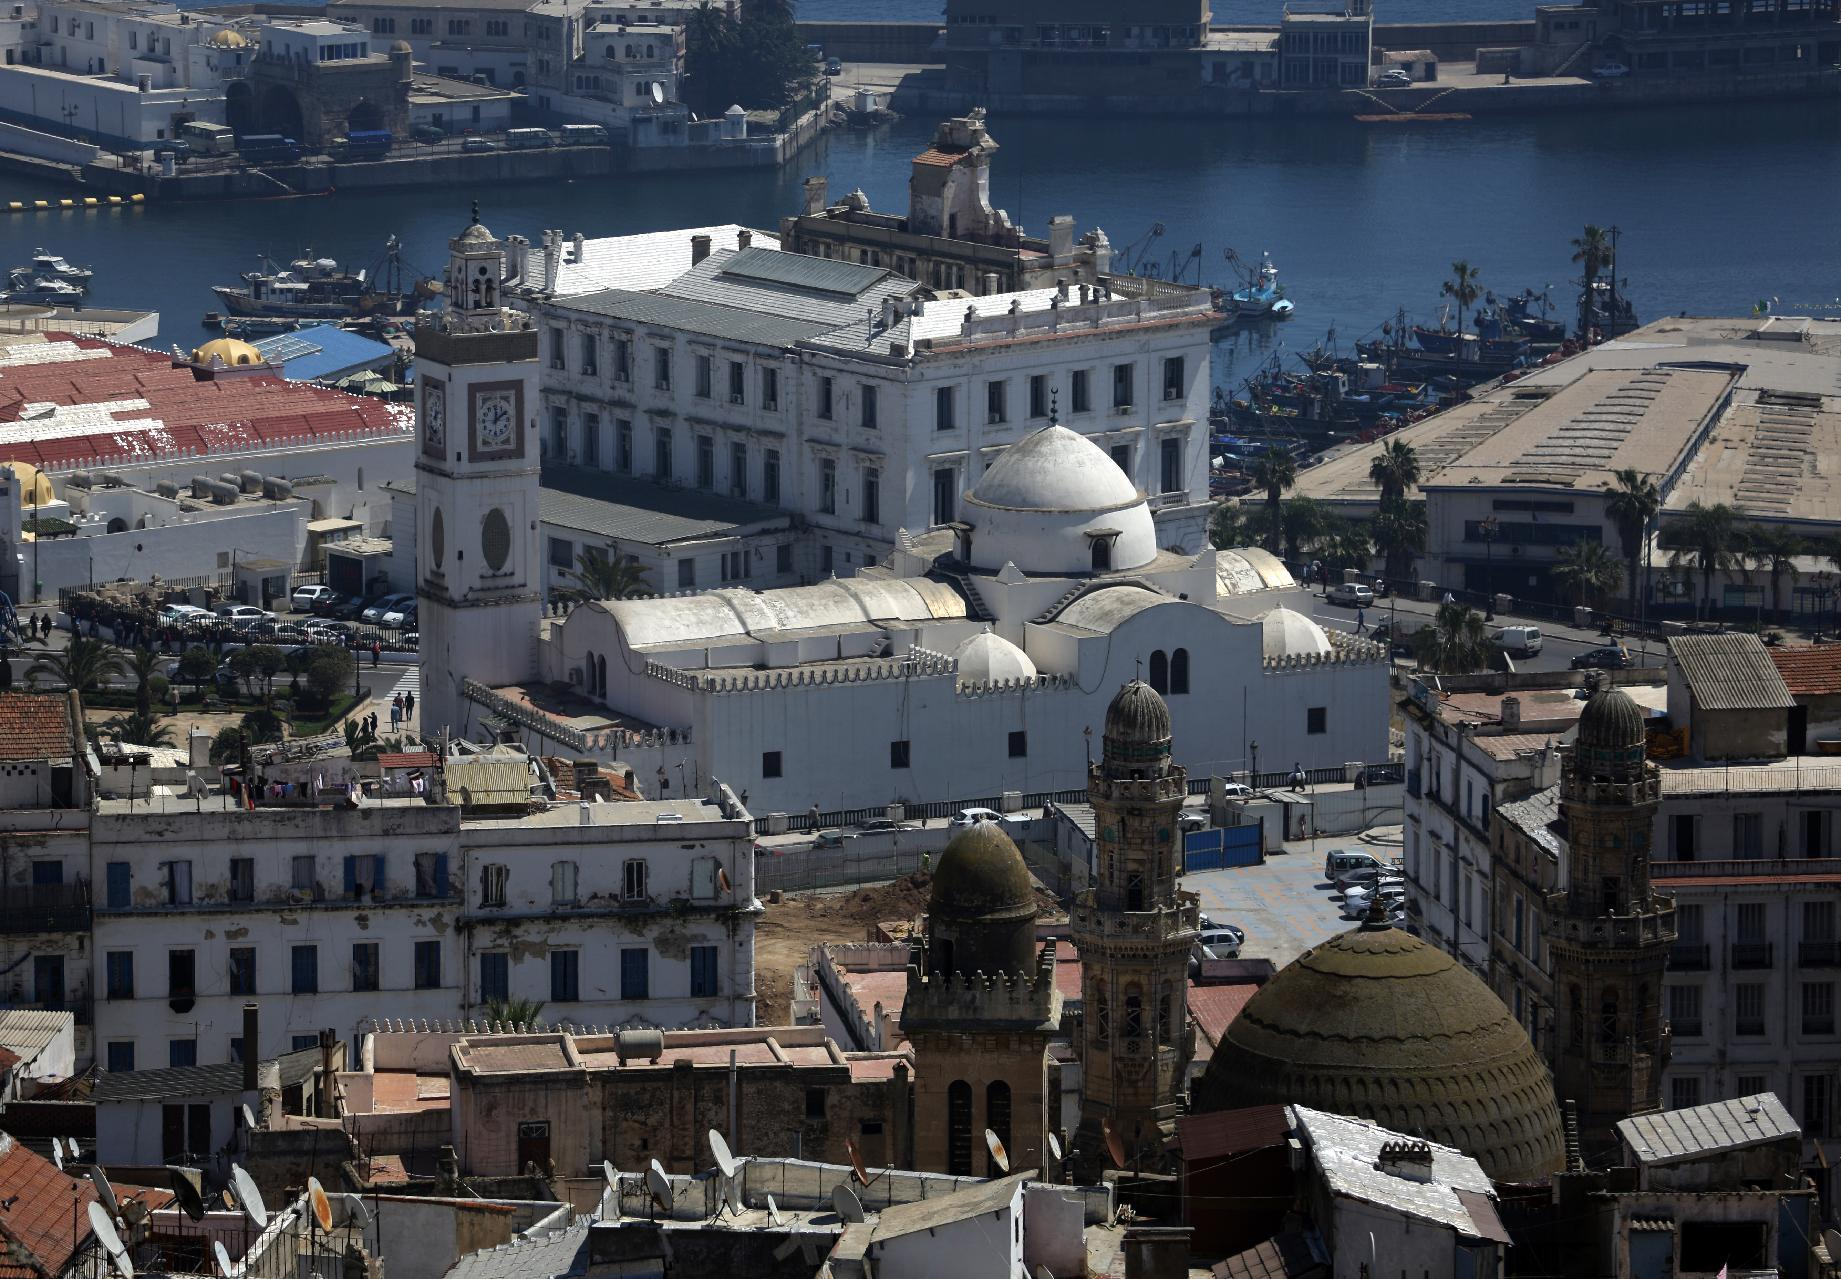 The Great Synagogue of Oran (C-white), which was confiscated and converted into a mosque in 1975 in Algiers, April 16, 2014